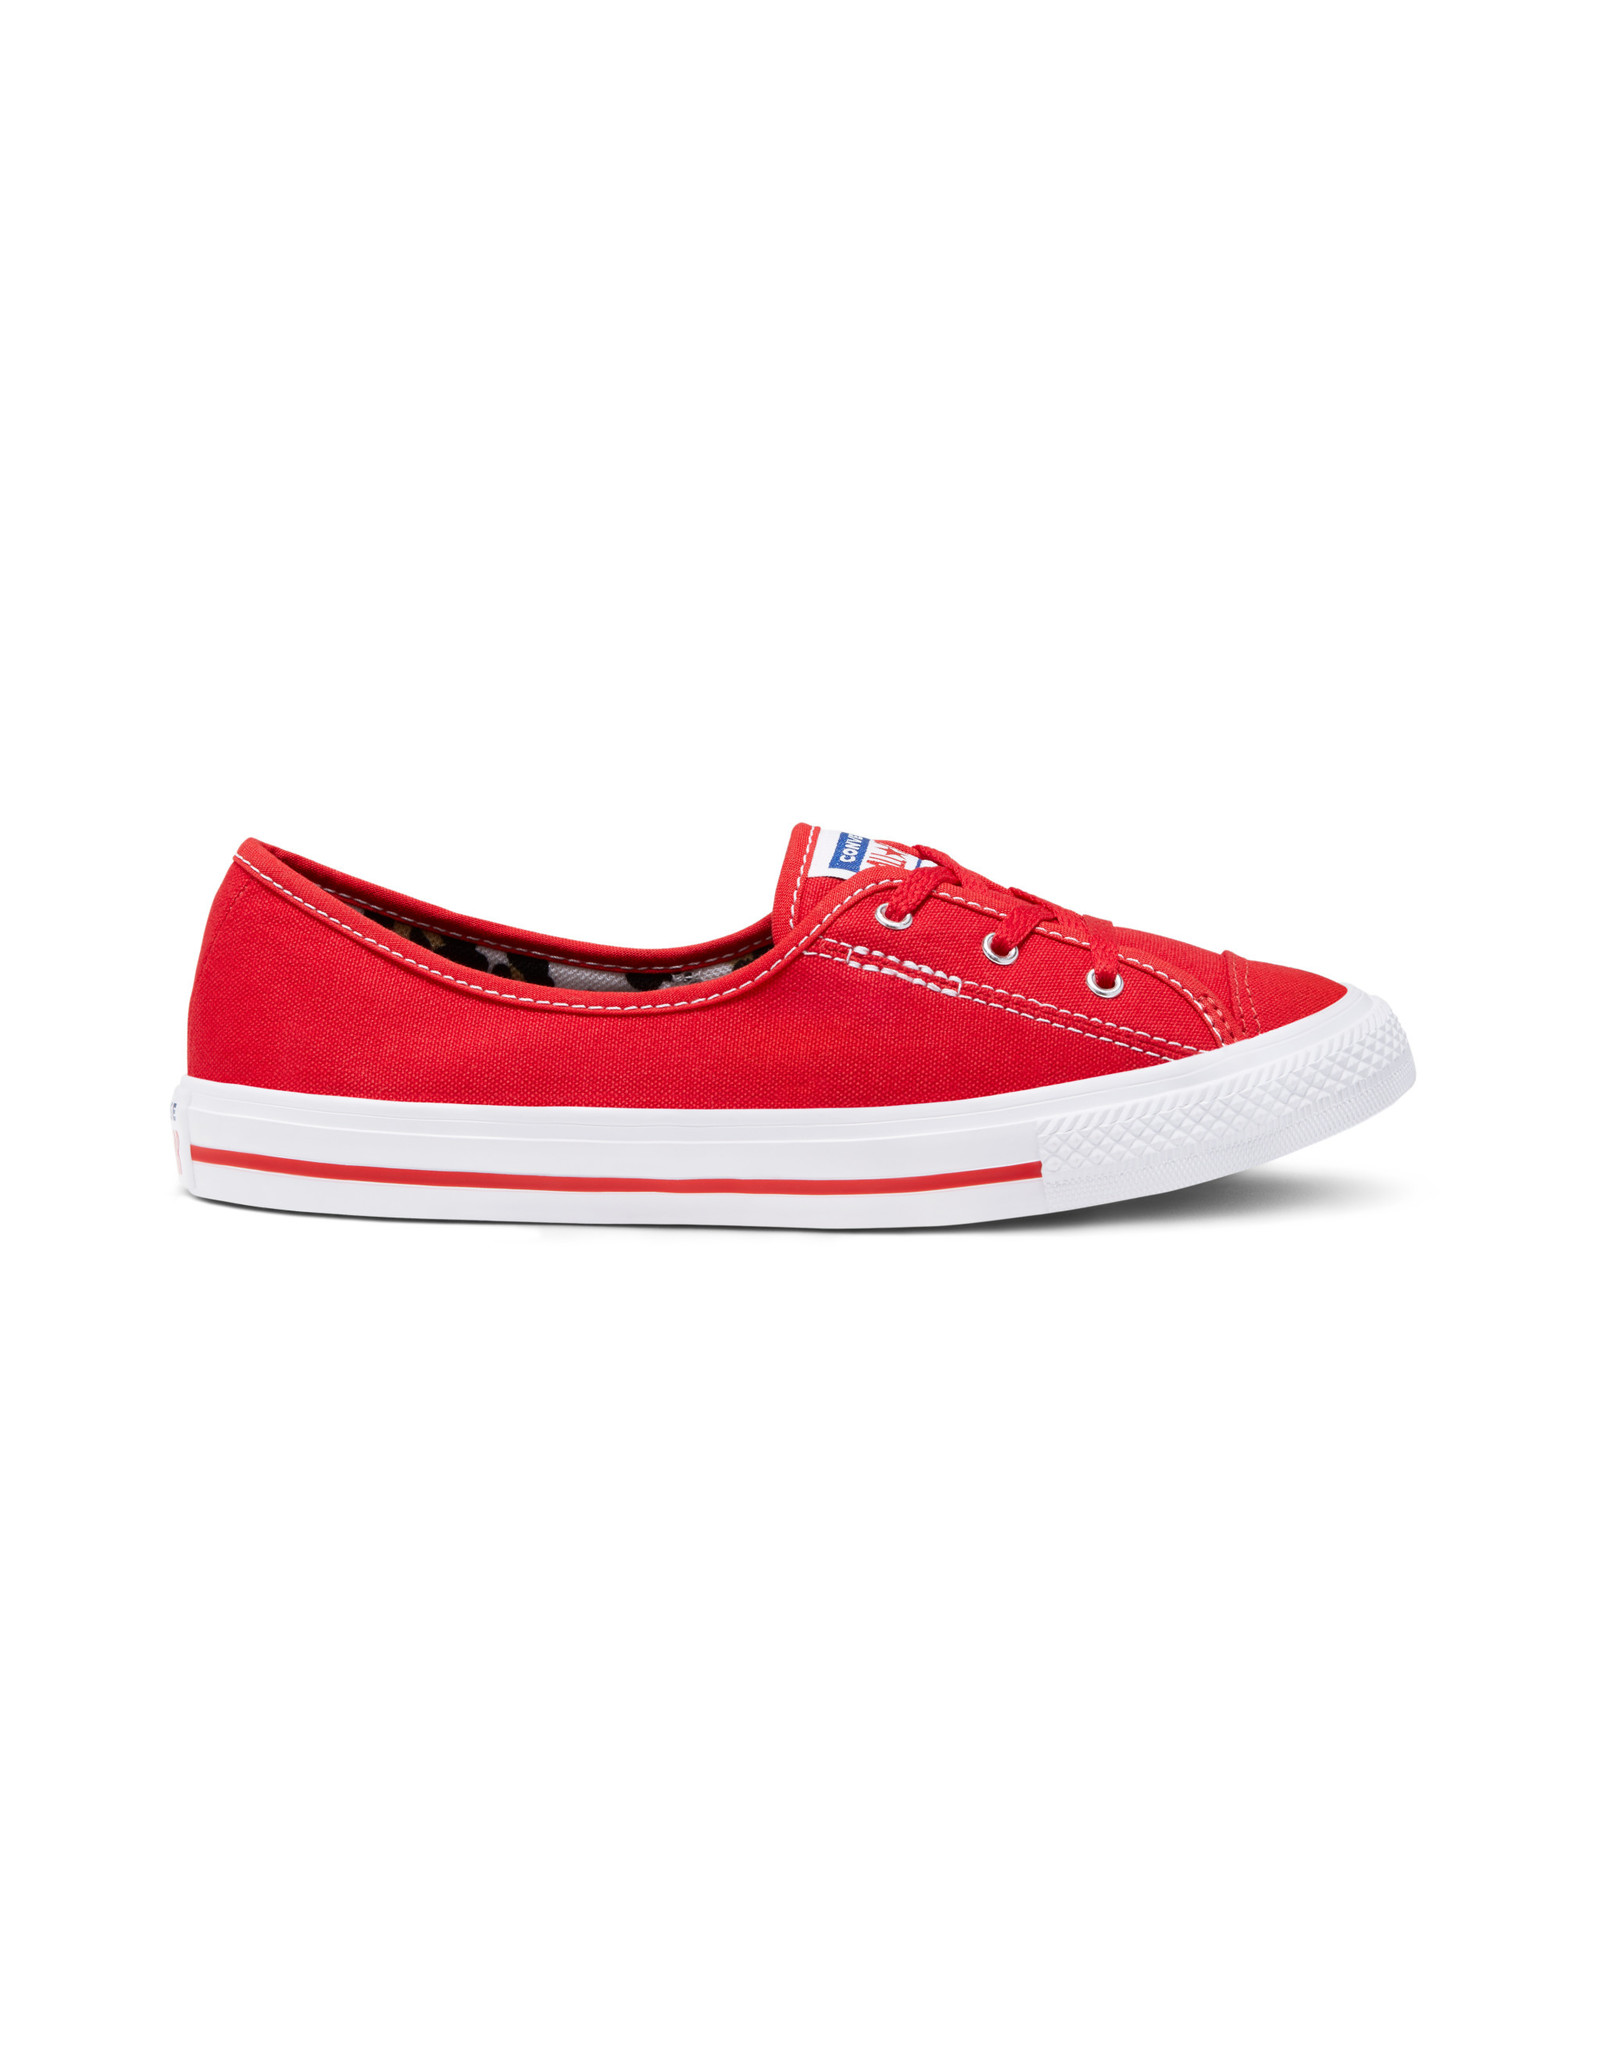 CONVERSE CHUCK TAYLOR ALL STAR  BALLET LACE SLIP UNIVERSITY RED C083R-566779C